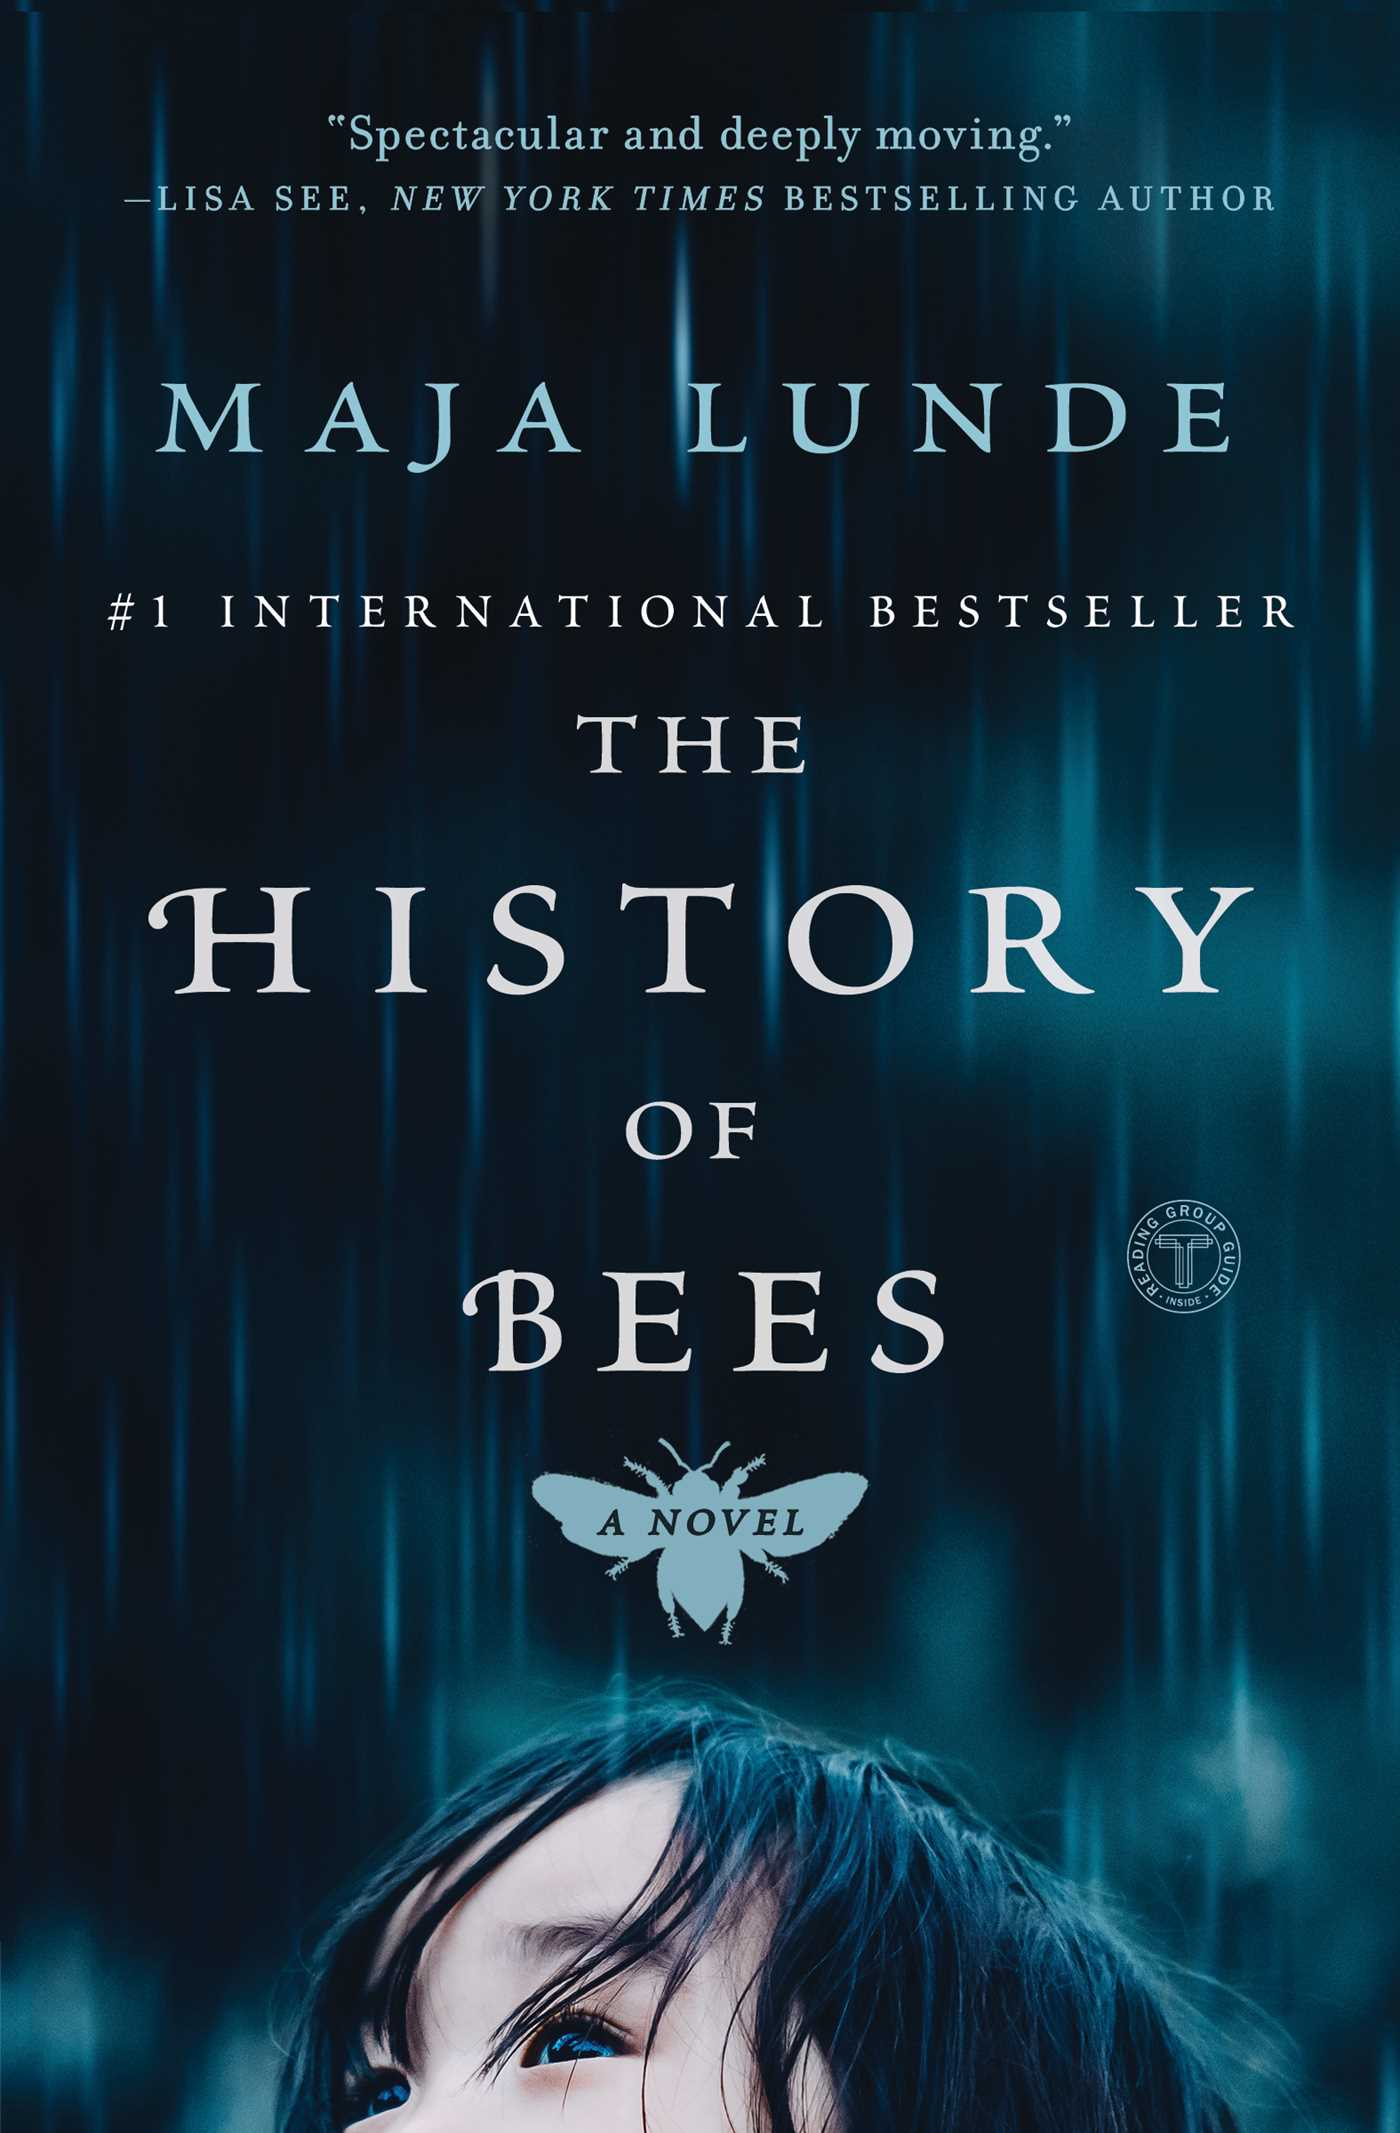 The history of bees 9781501161391 hr